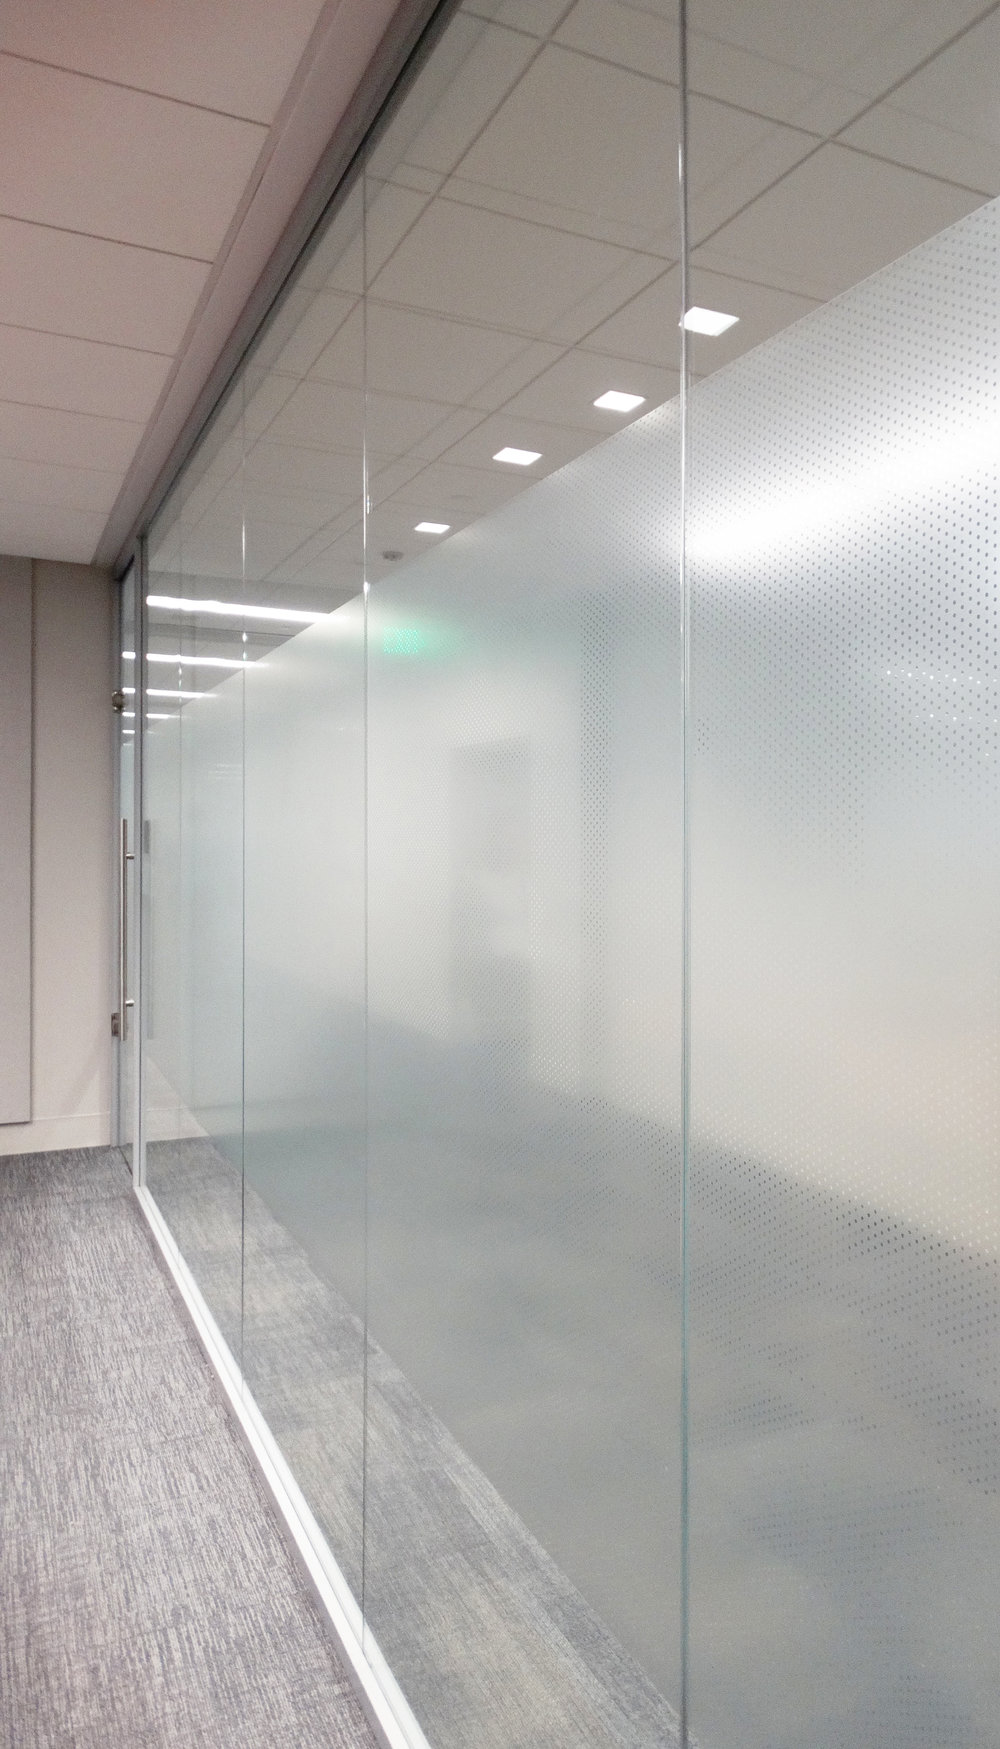 Litespace Aluminum Framed Butt Glazed Glass Wall - Spaceworks AI.jpg